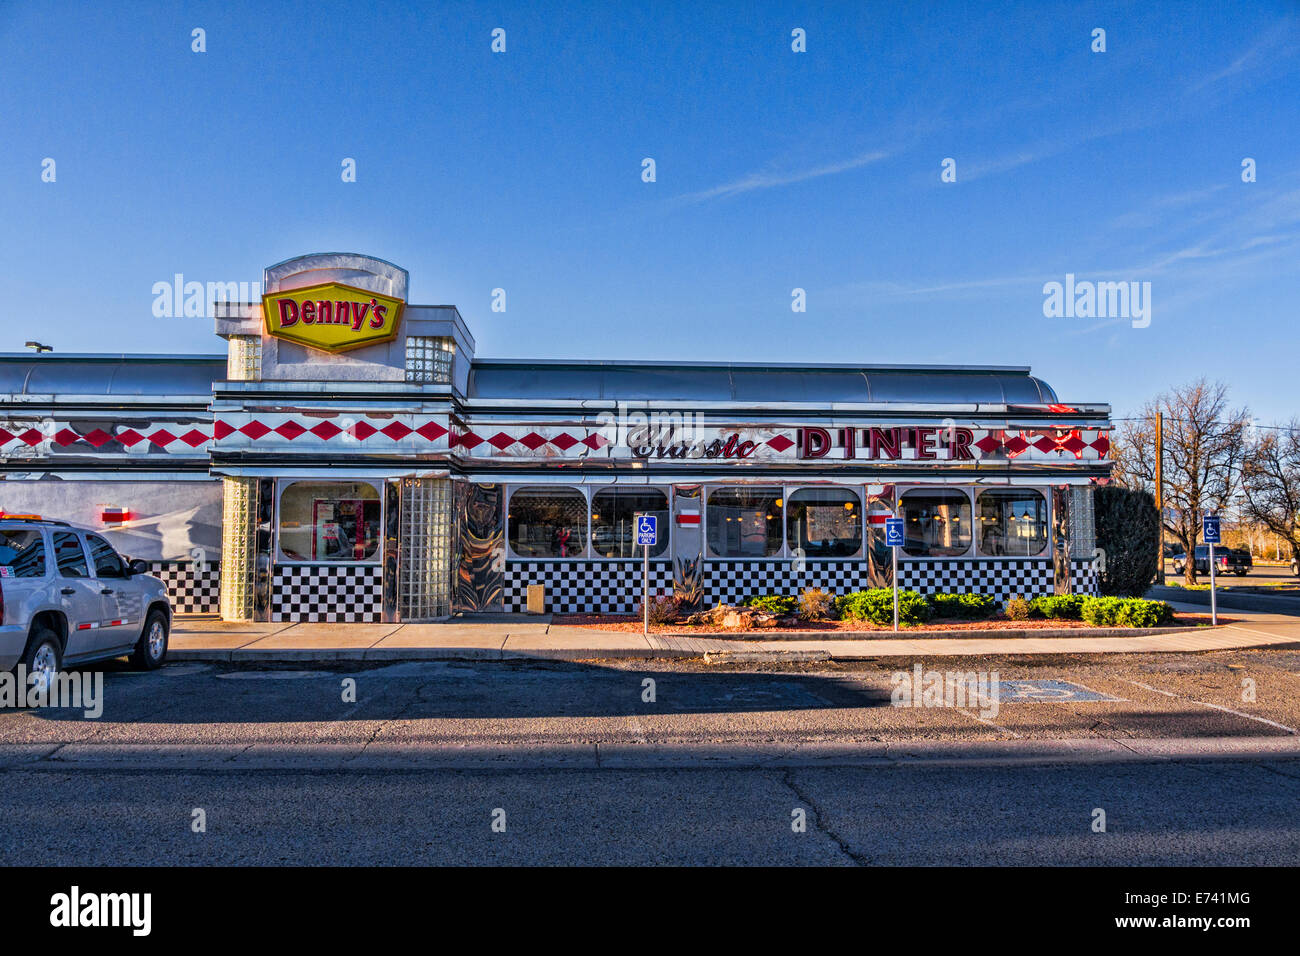 Denny 39 s classic diner cortez colorado usa stock photo for American classic diner